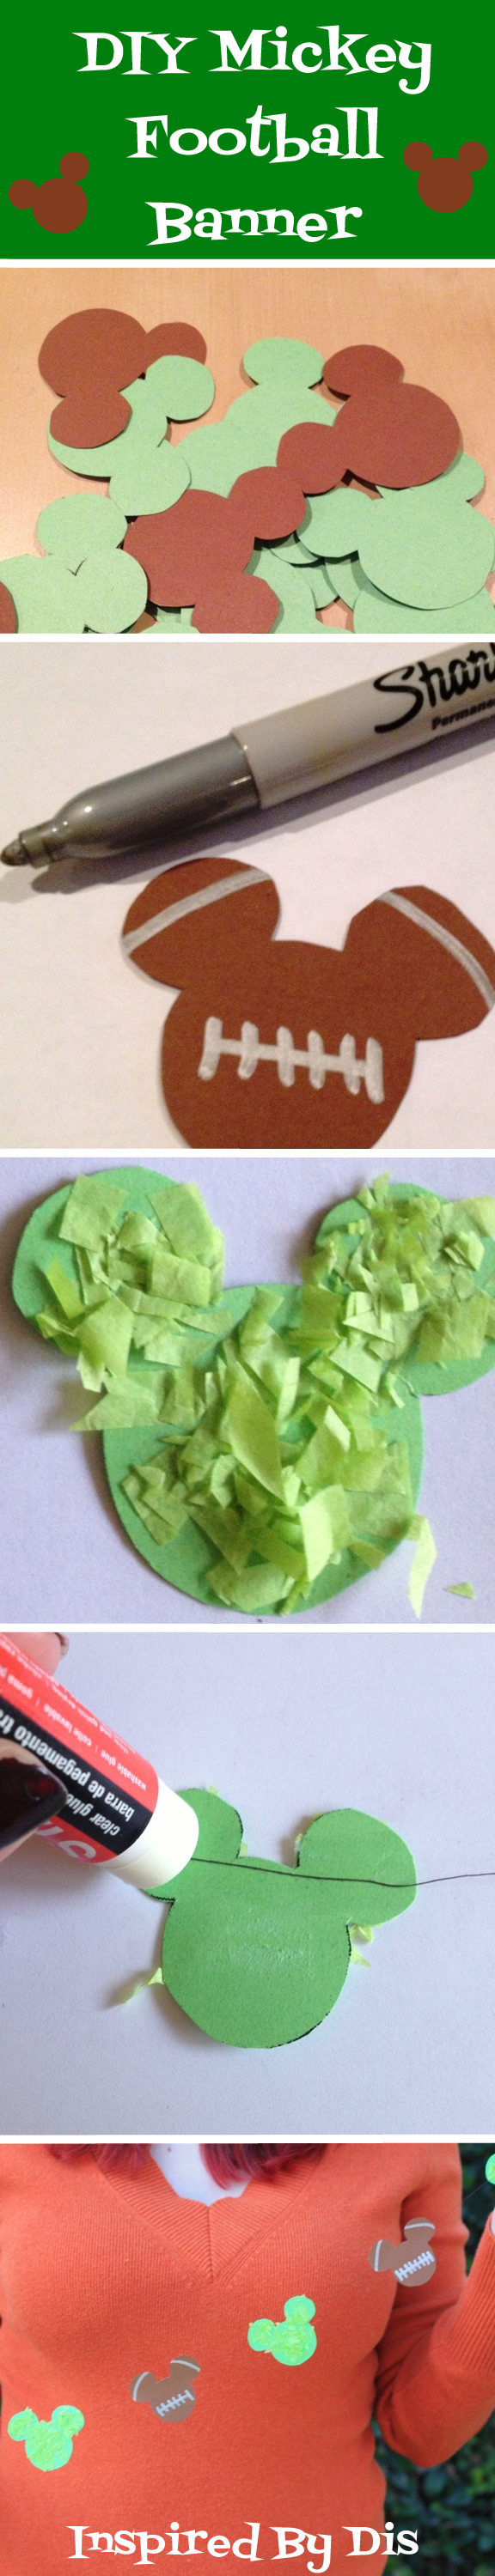 diy mickey football banner for your big game party inspired by dis